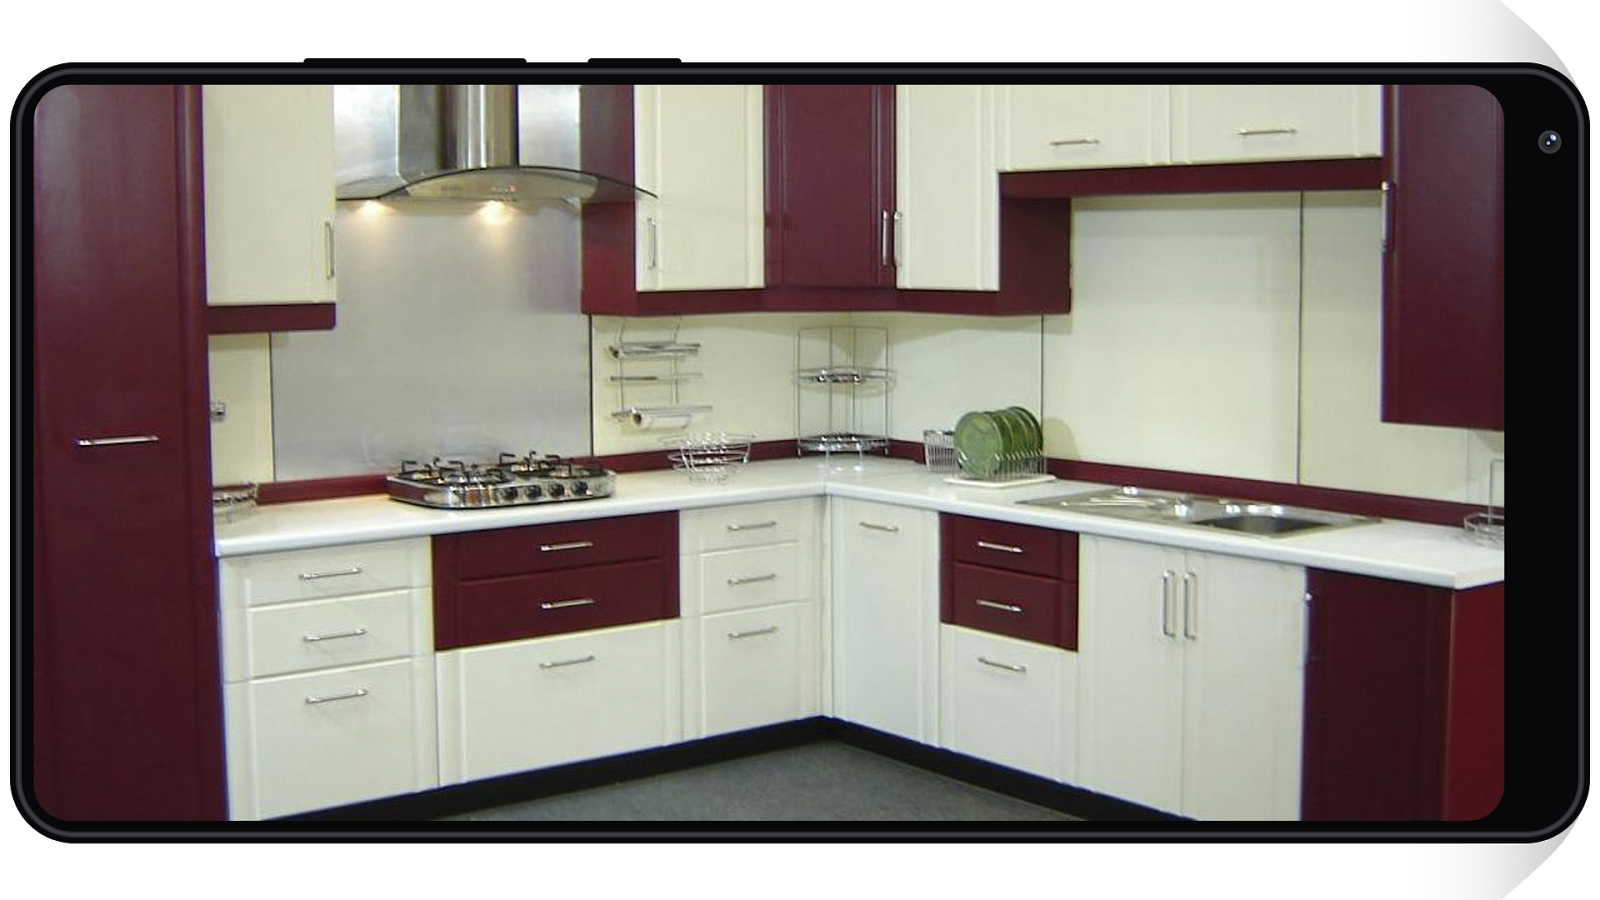 Latest kitchens designs 2018 android apps on google play for What is new in kitchen design